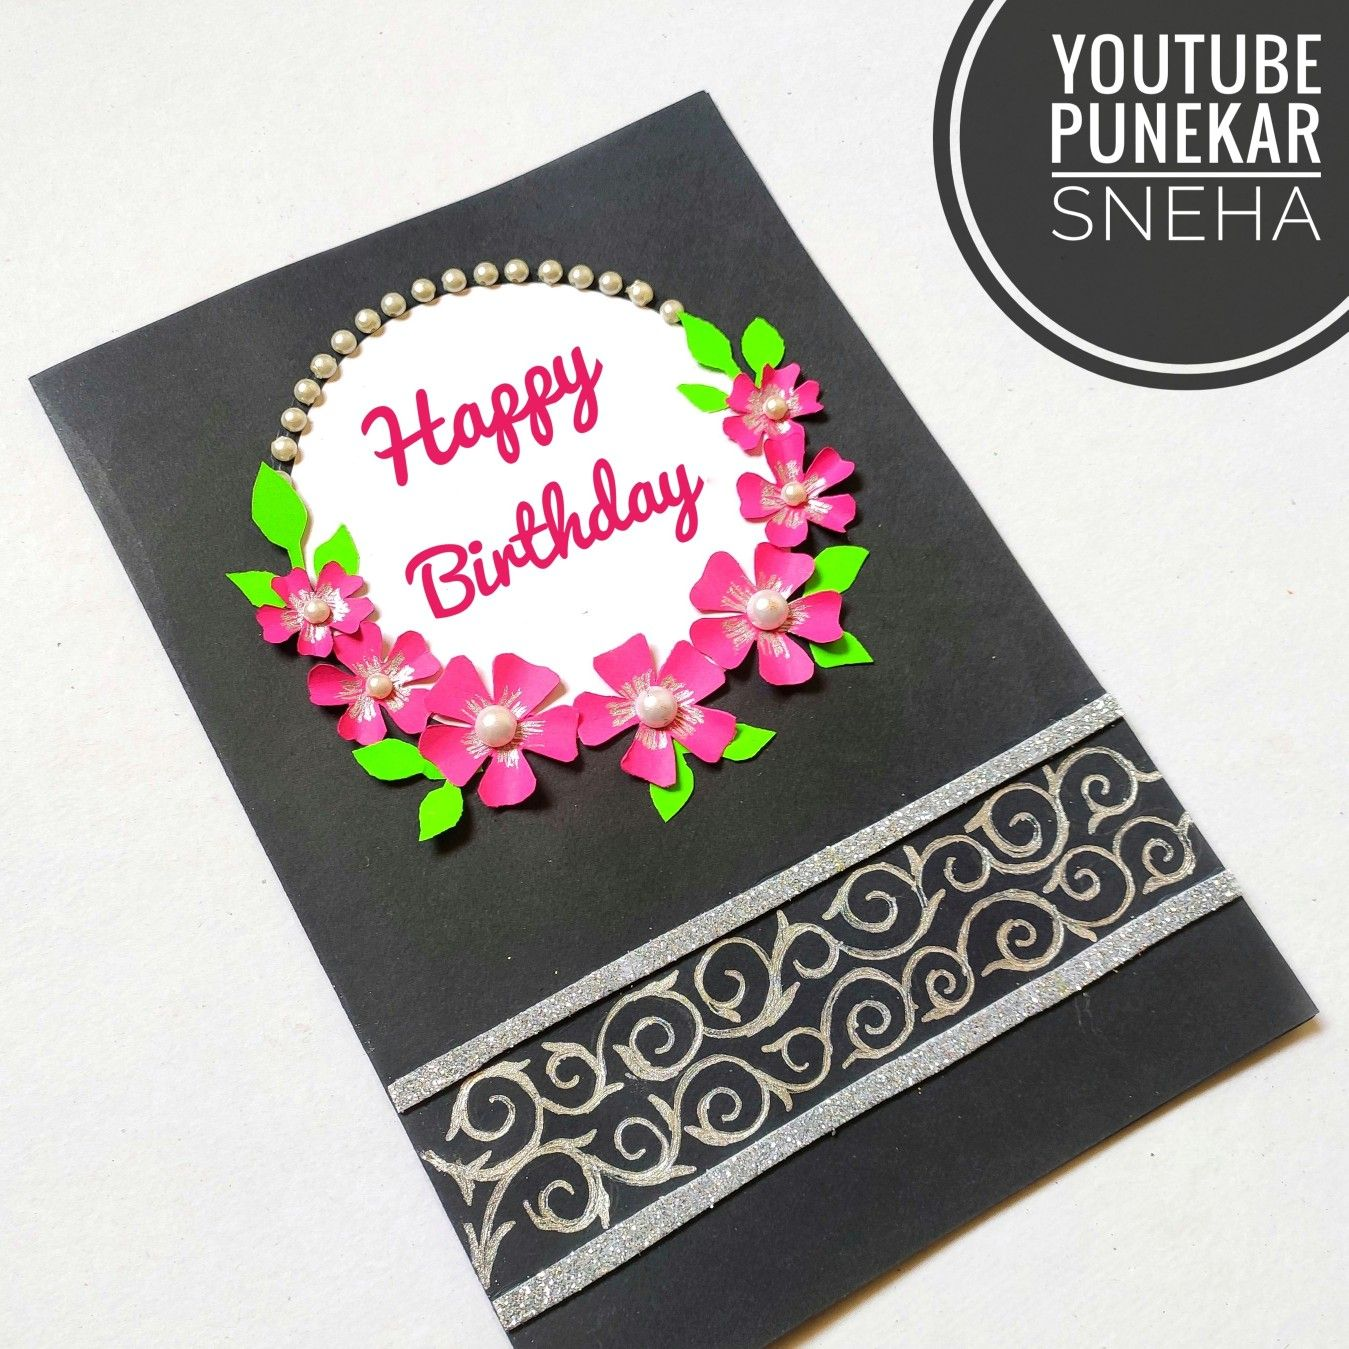 Birthday Greeting Card Making How To Make Diy Crafts By Punekar Sneha Special Birthday Cards Card Making Birthday Birthday Greeting Cards